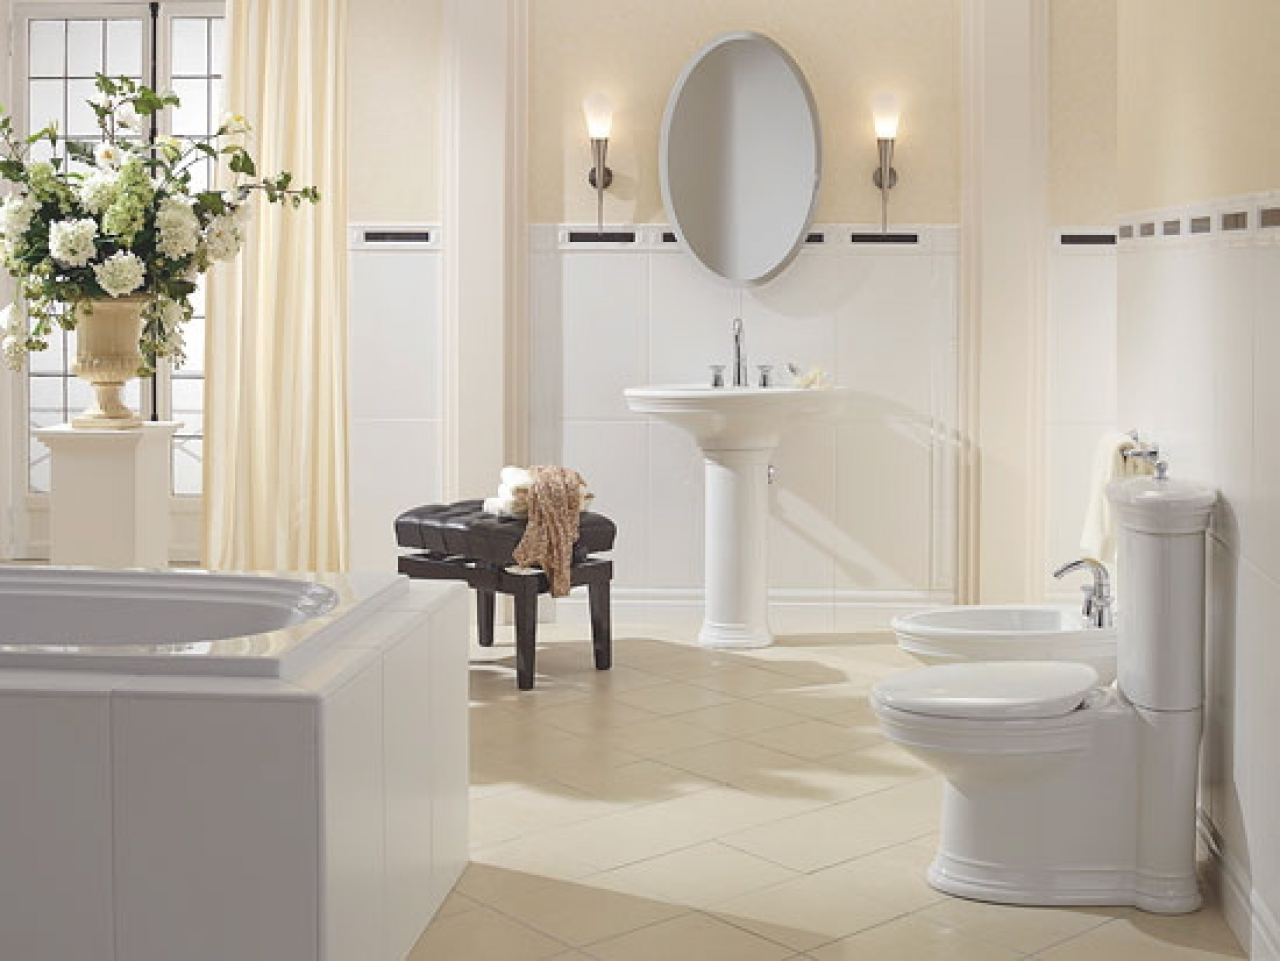 Elegant bathrooms uk house decor ideas Decorating ideas for bathrooms on a budget